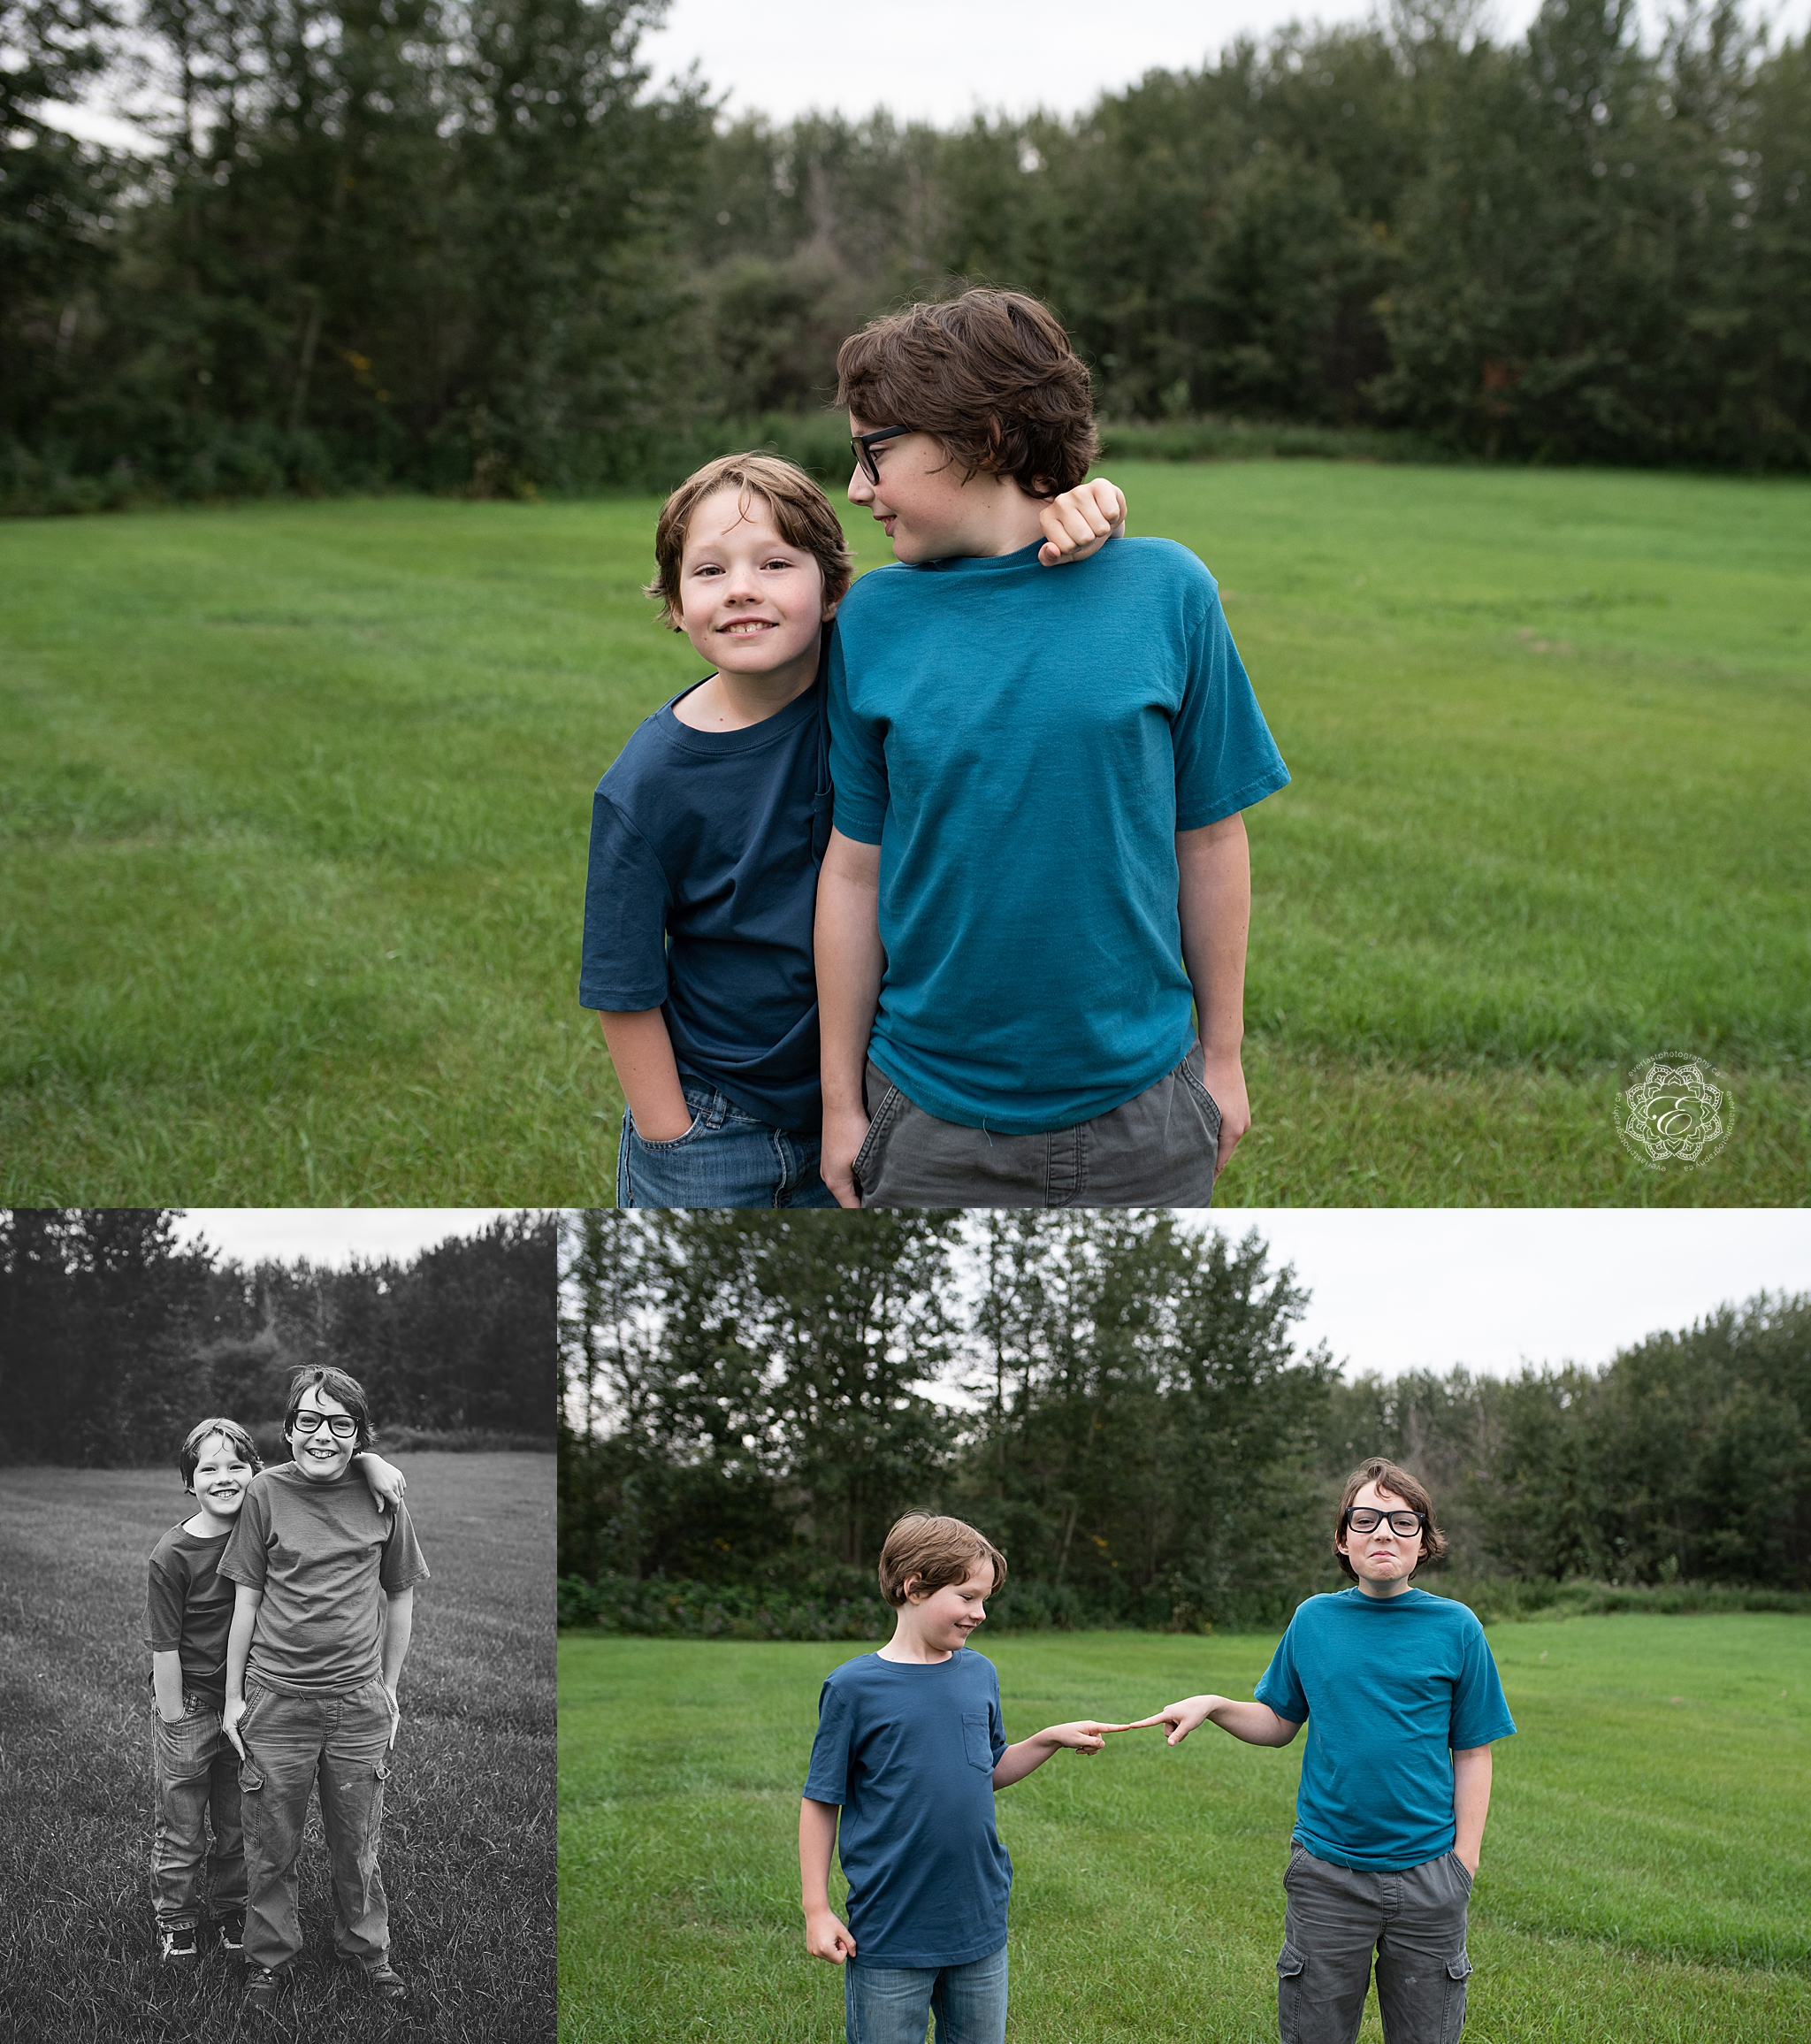 edmonton-family-lifestyle-photographer.jpg